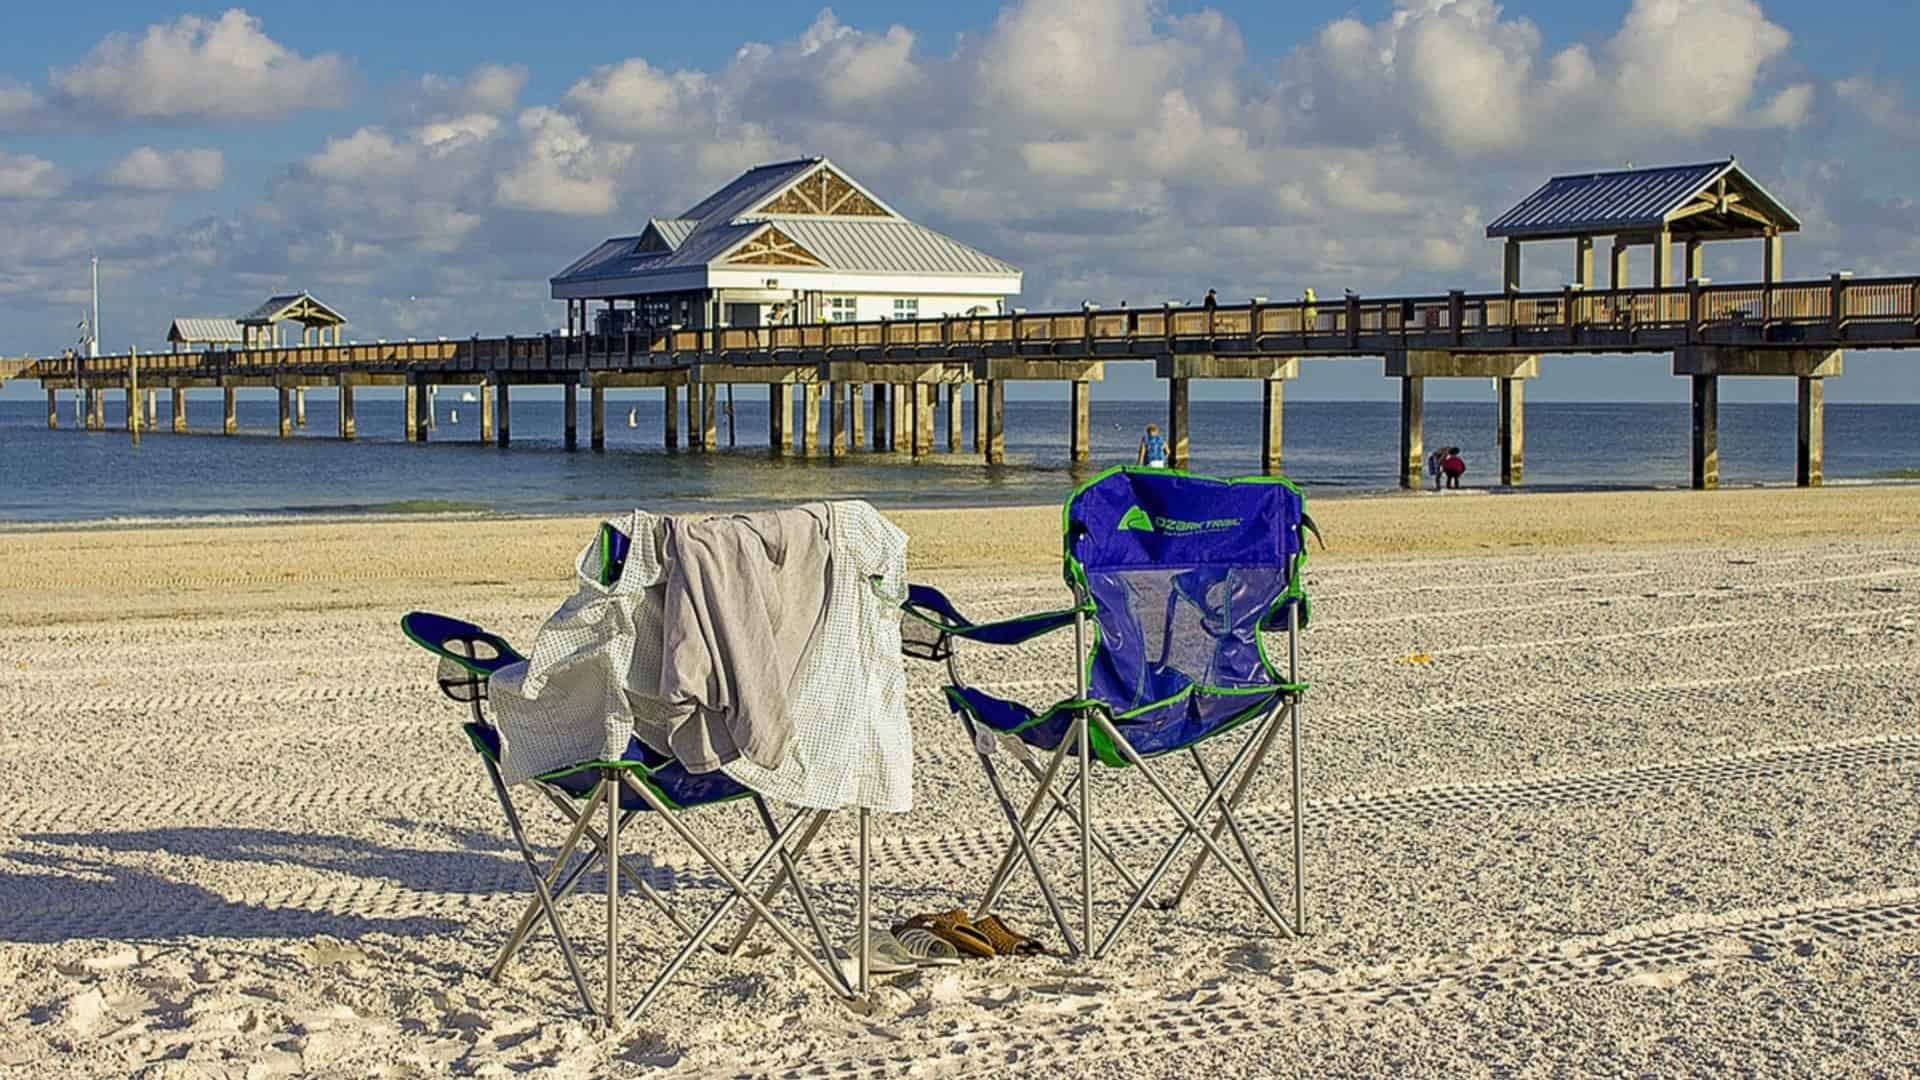 The Top Packable Beach Chair of 2018